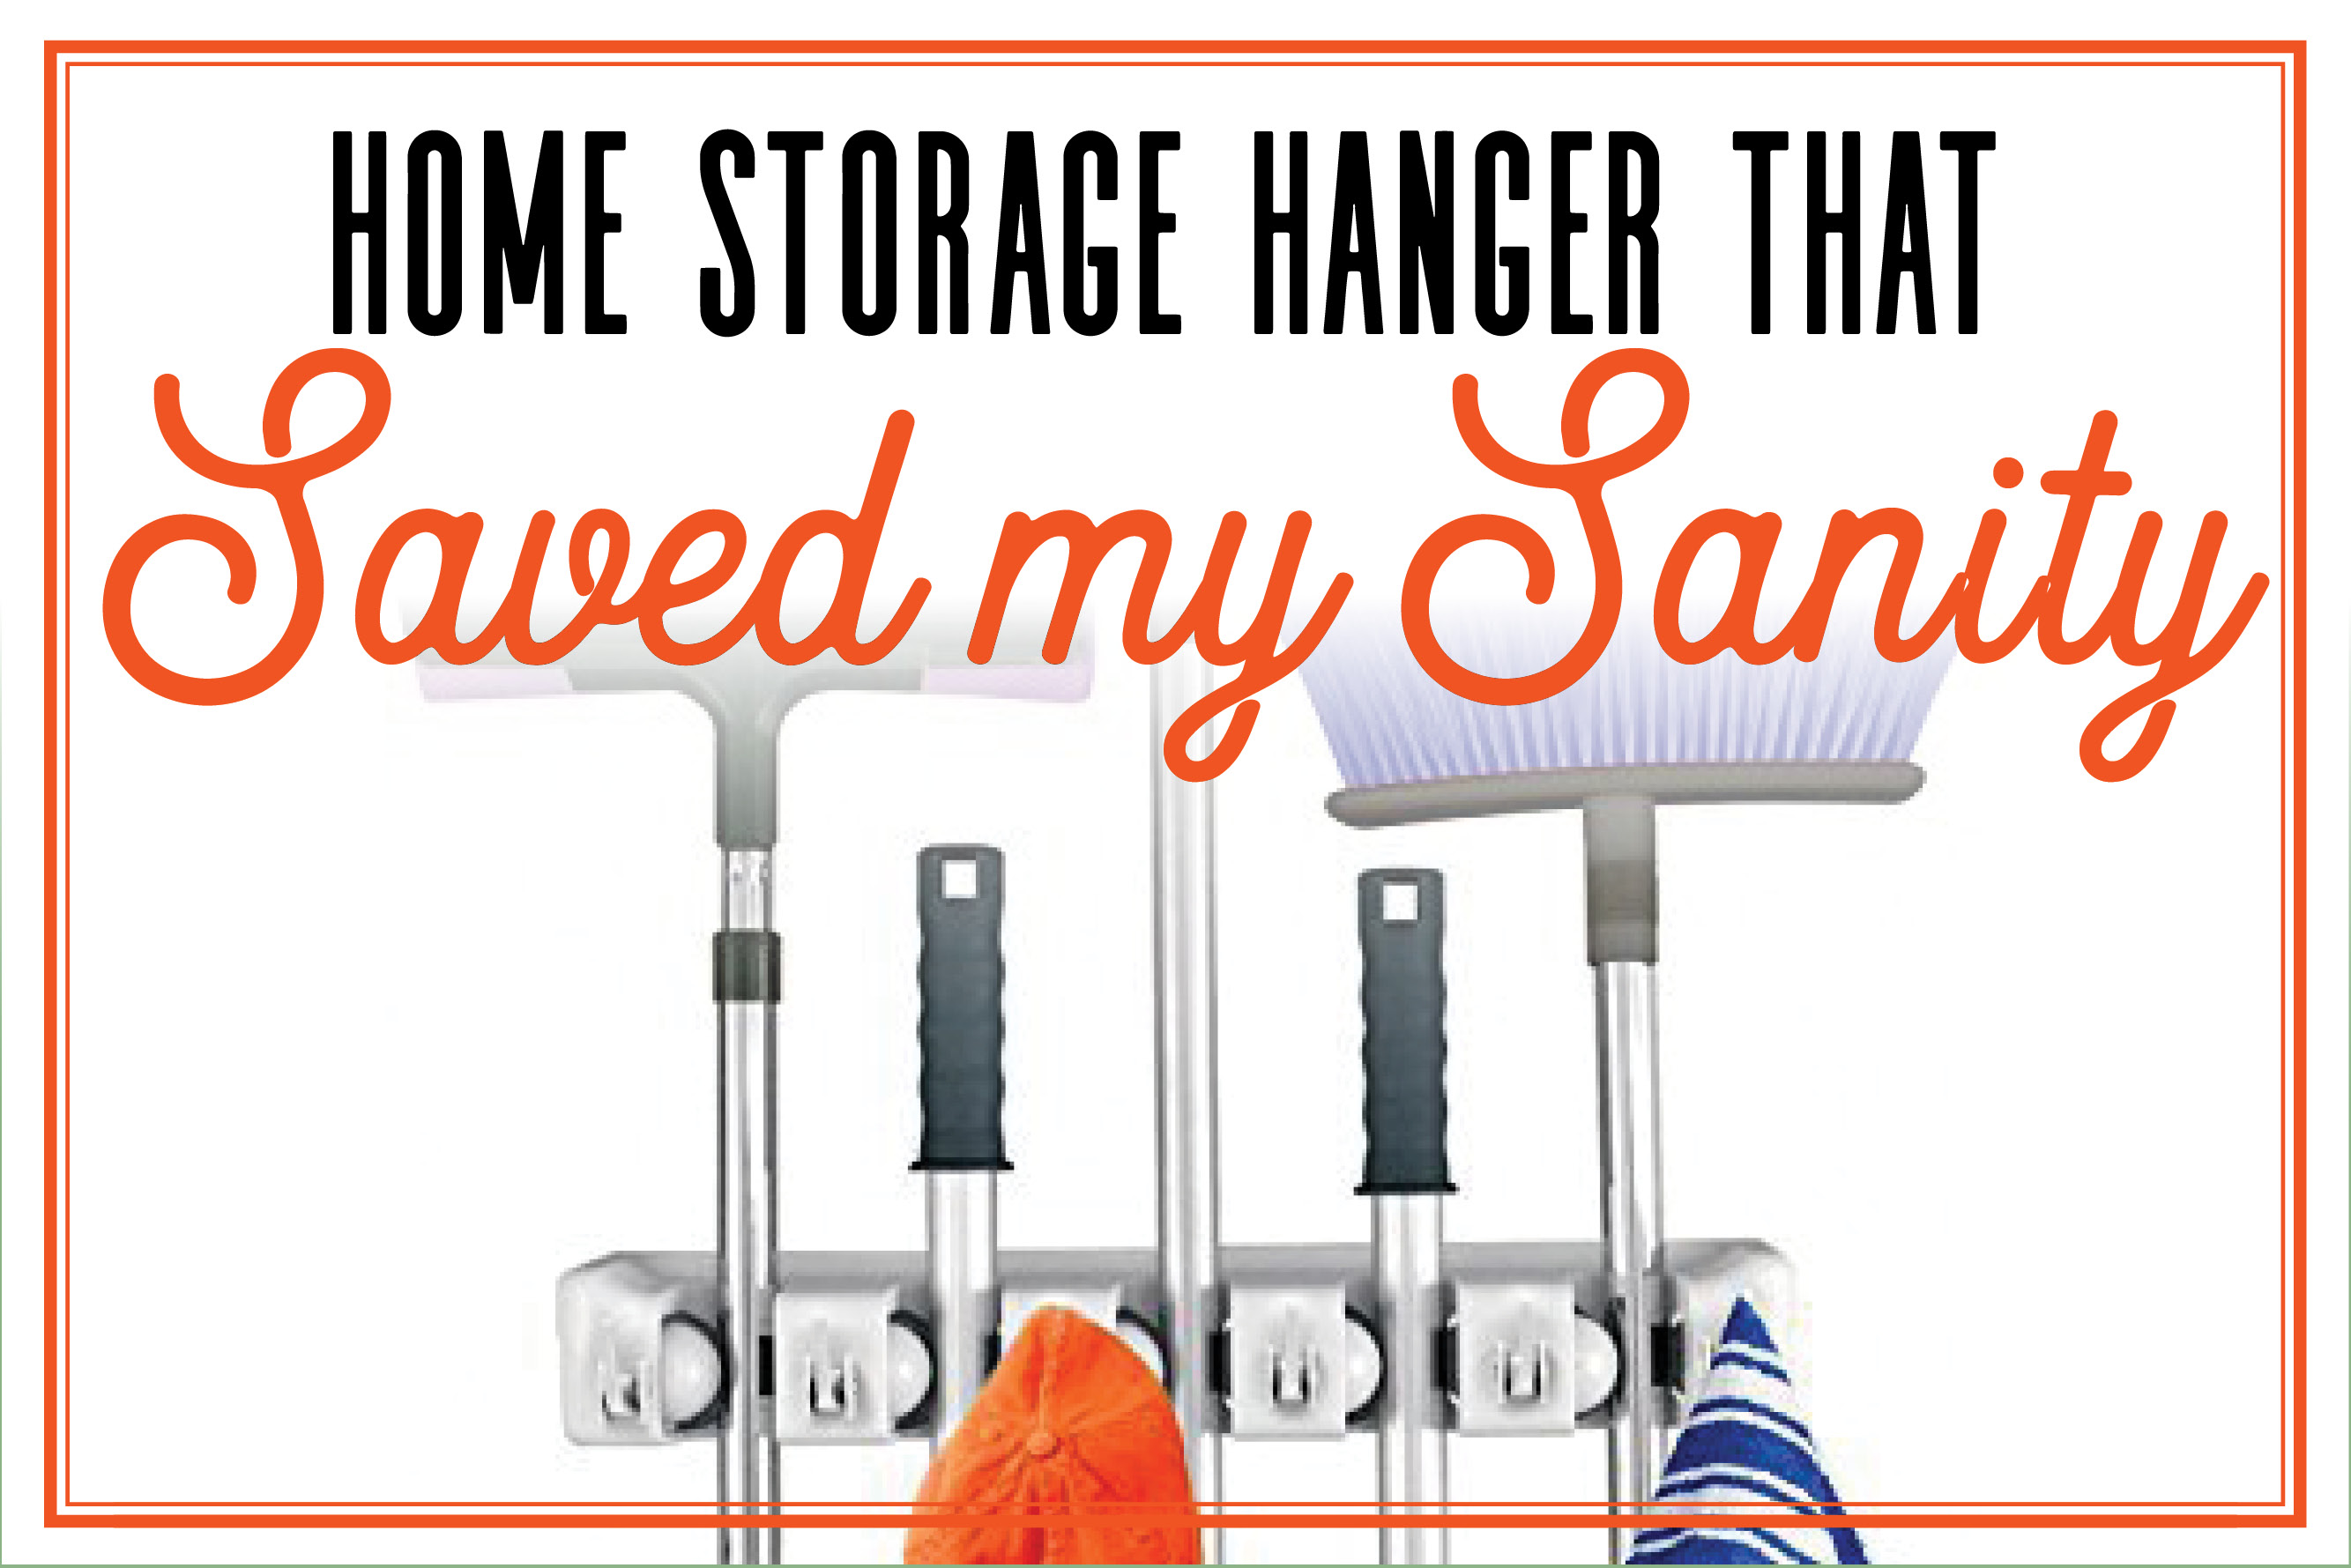 Home Storage Hanger That Saved my Sanity